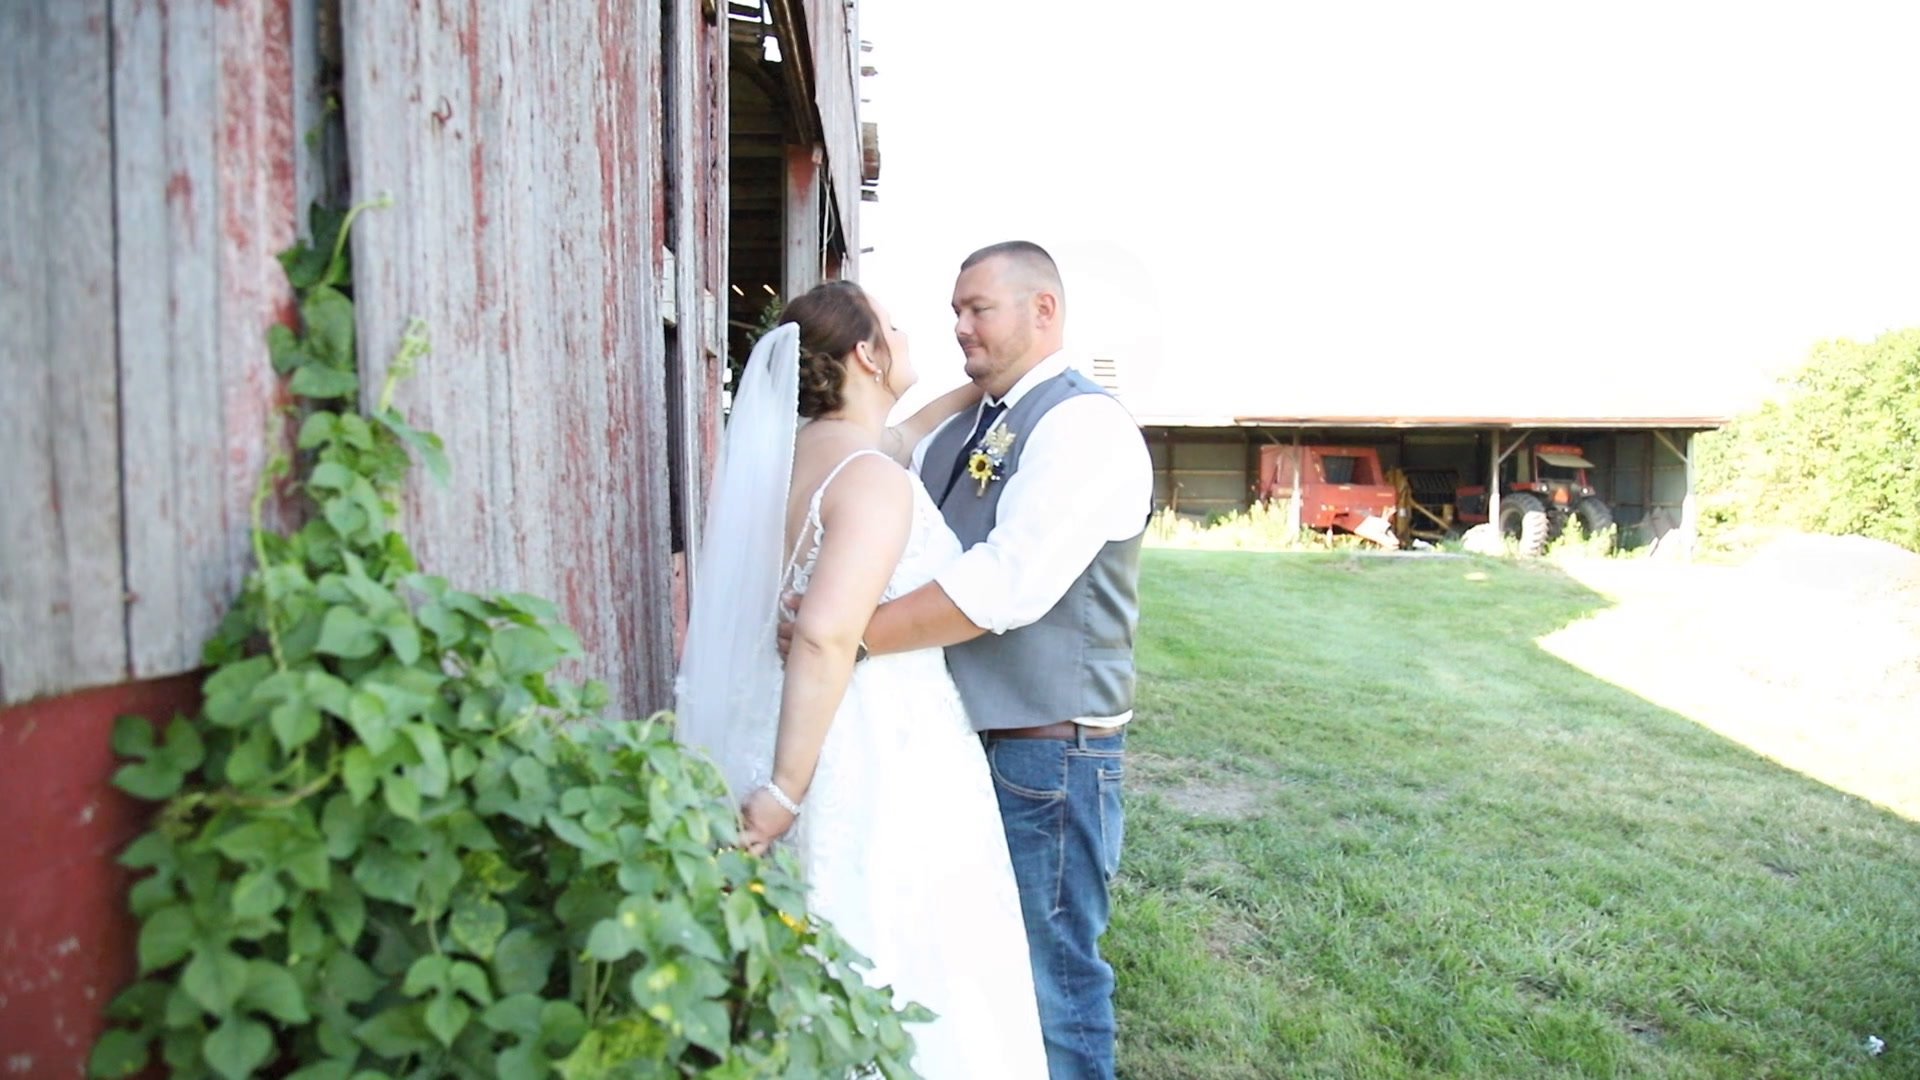 Jennifer + Brandon | Bunker Hill, Illinois | Bunker Hill VFW